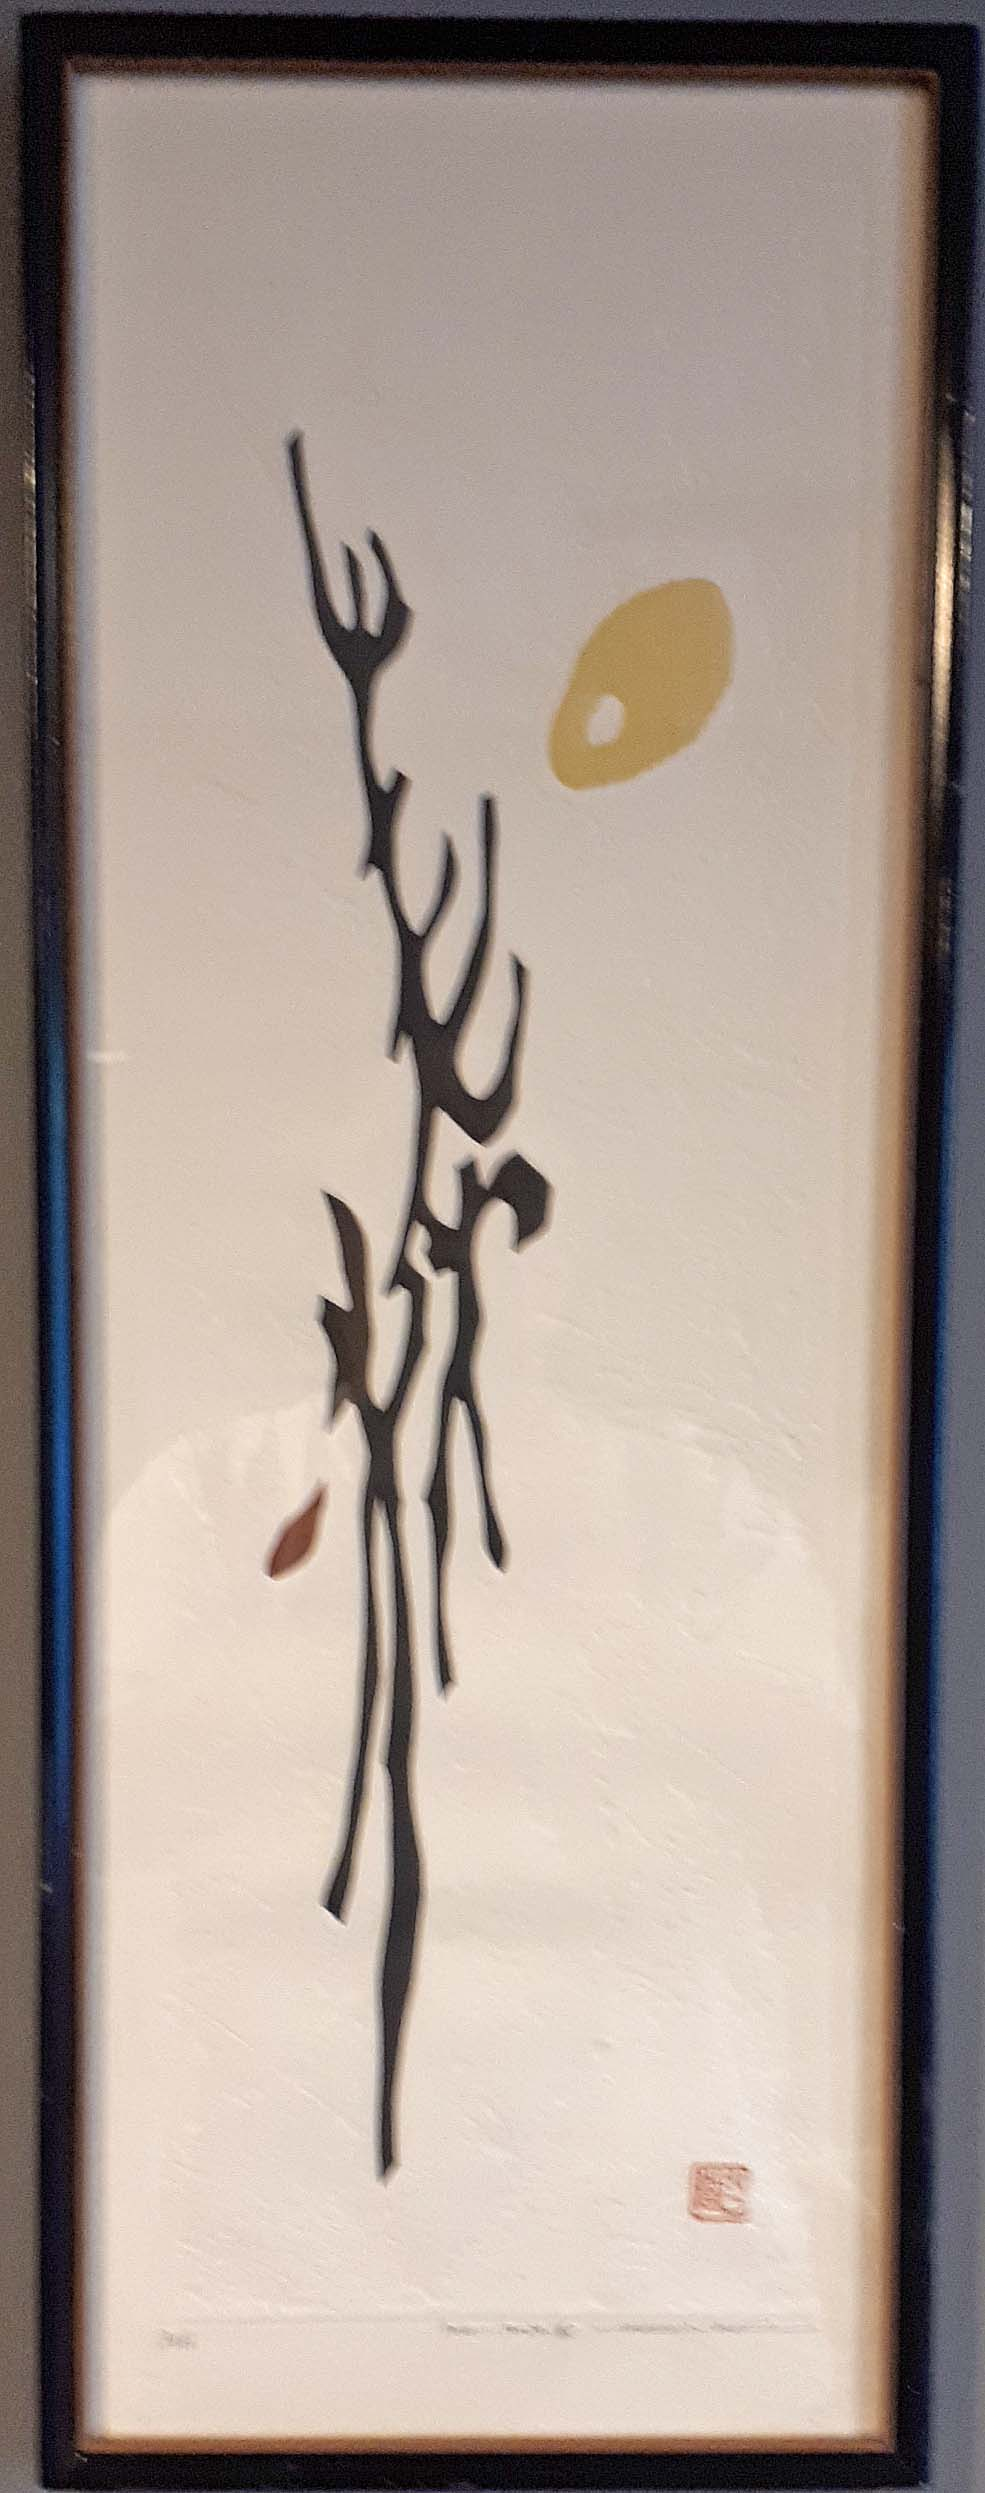 Maki Haku (1924 -2000) Japan, Original Print 3/153, Size: 9 x 24.5, Price: 295.00